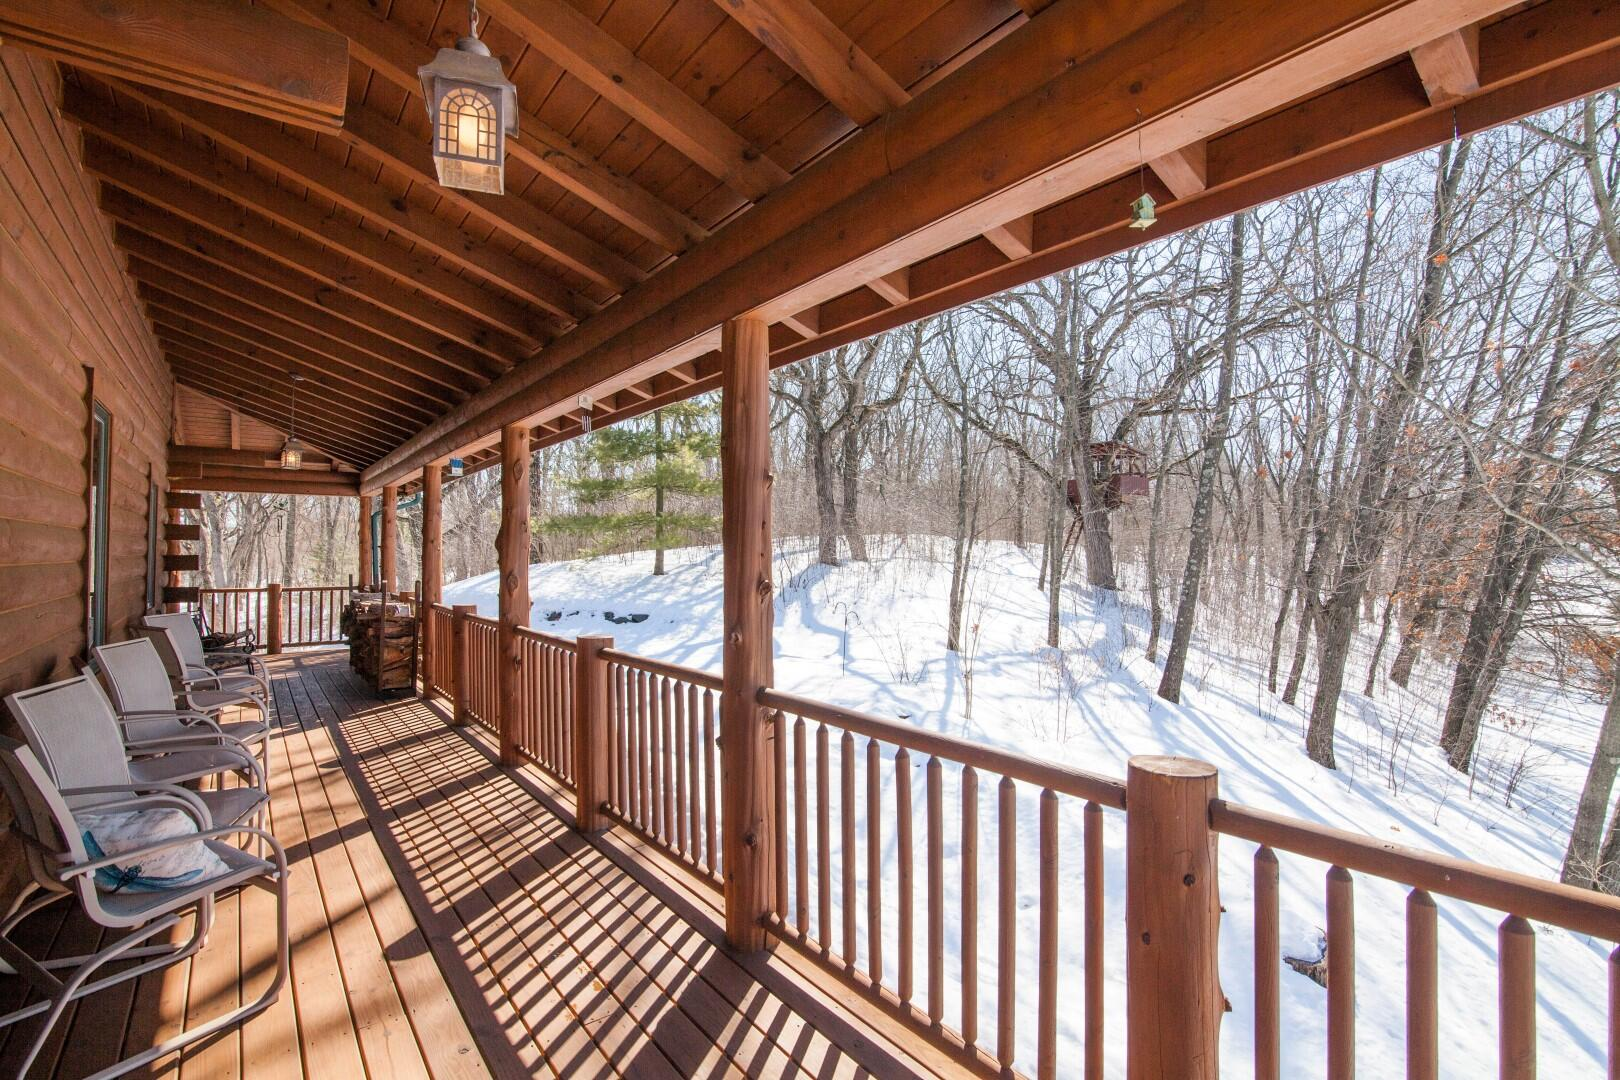 Covered Porch w/ View of Tree Fort